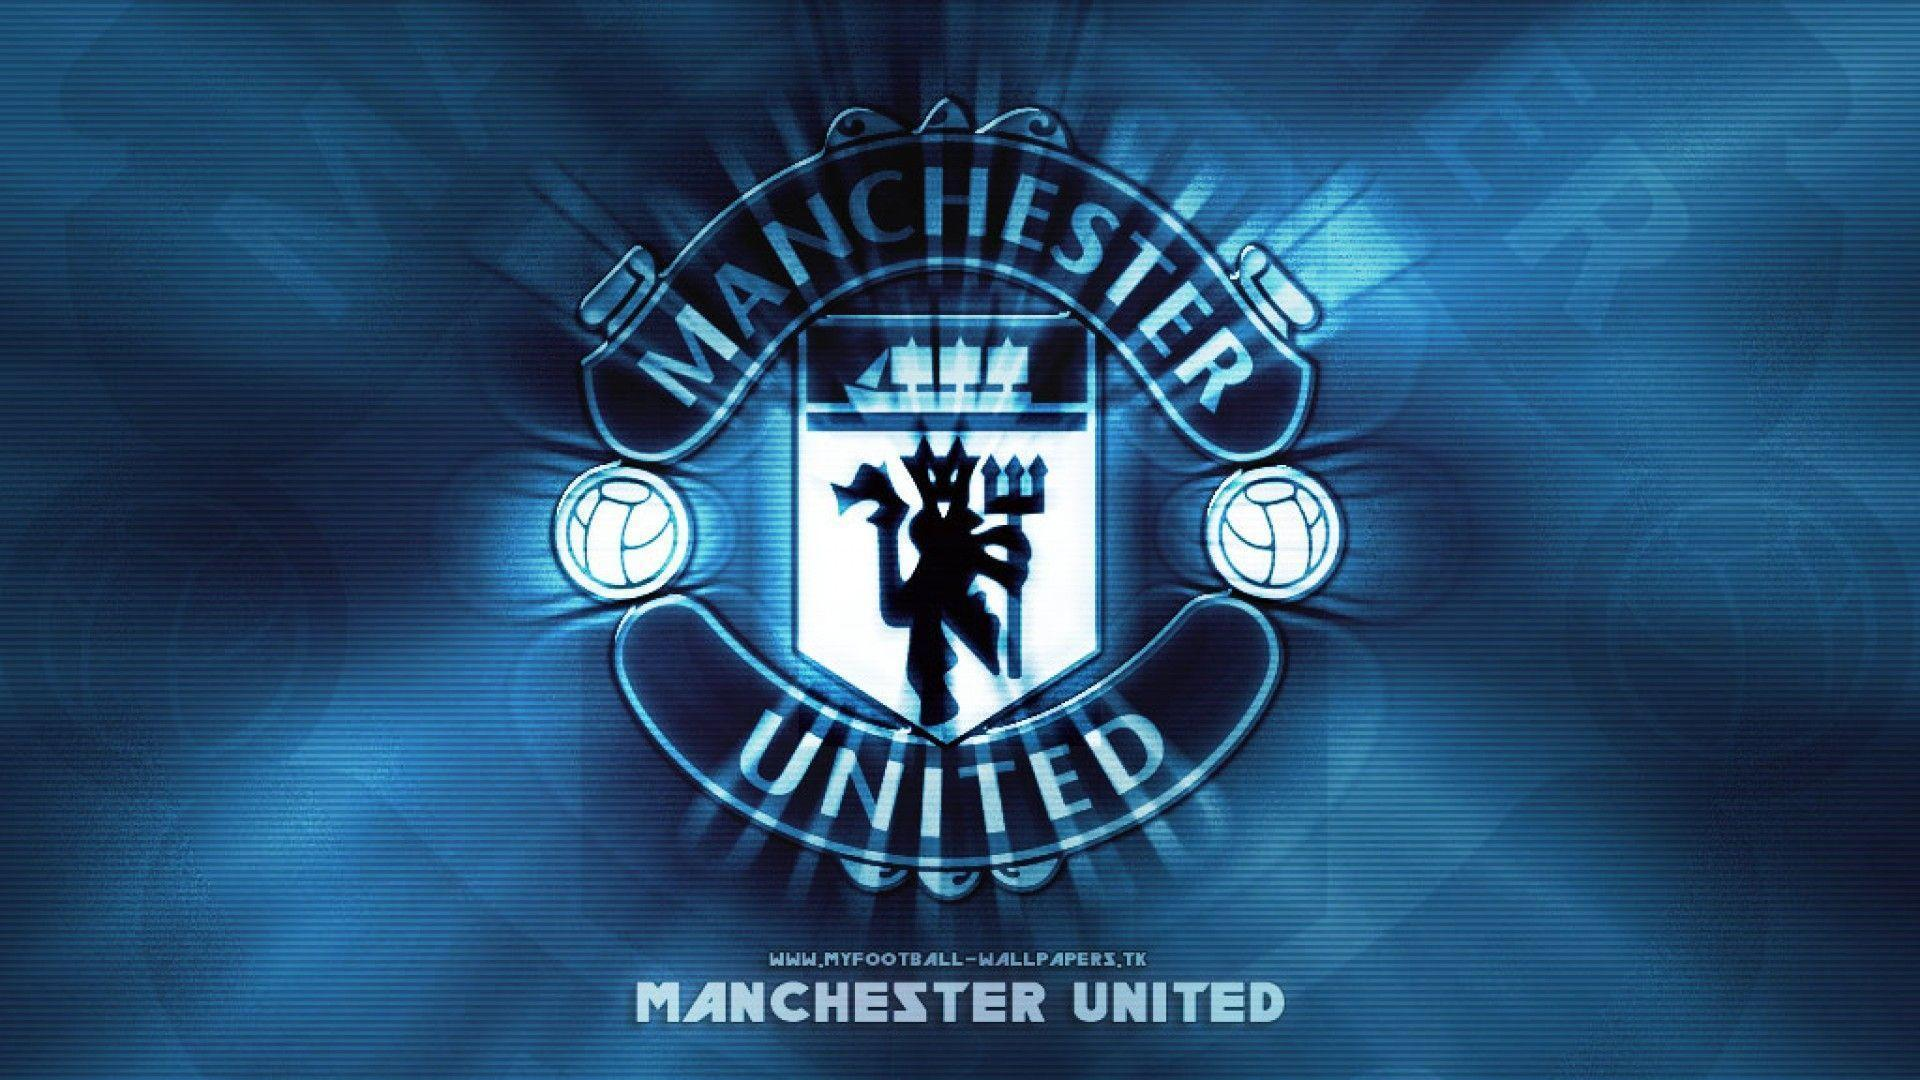 Man united wallpapers wallpaper cave manchester united 3d logo desktop wallpaper 4 15582 wallpaper voltagebd Image collections